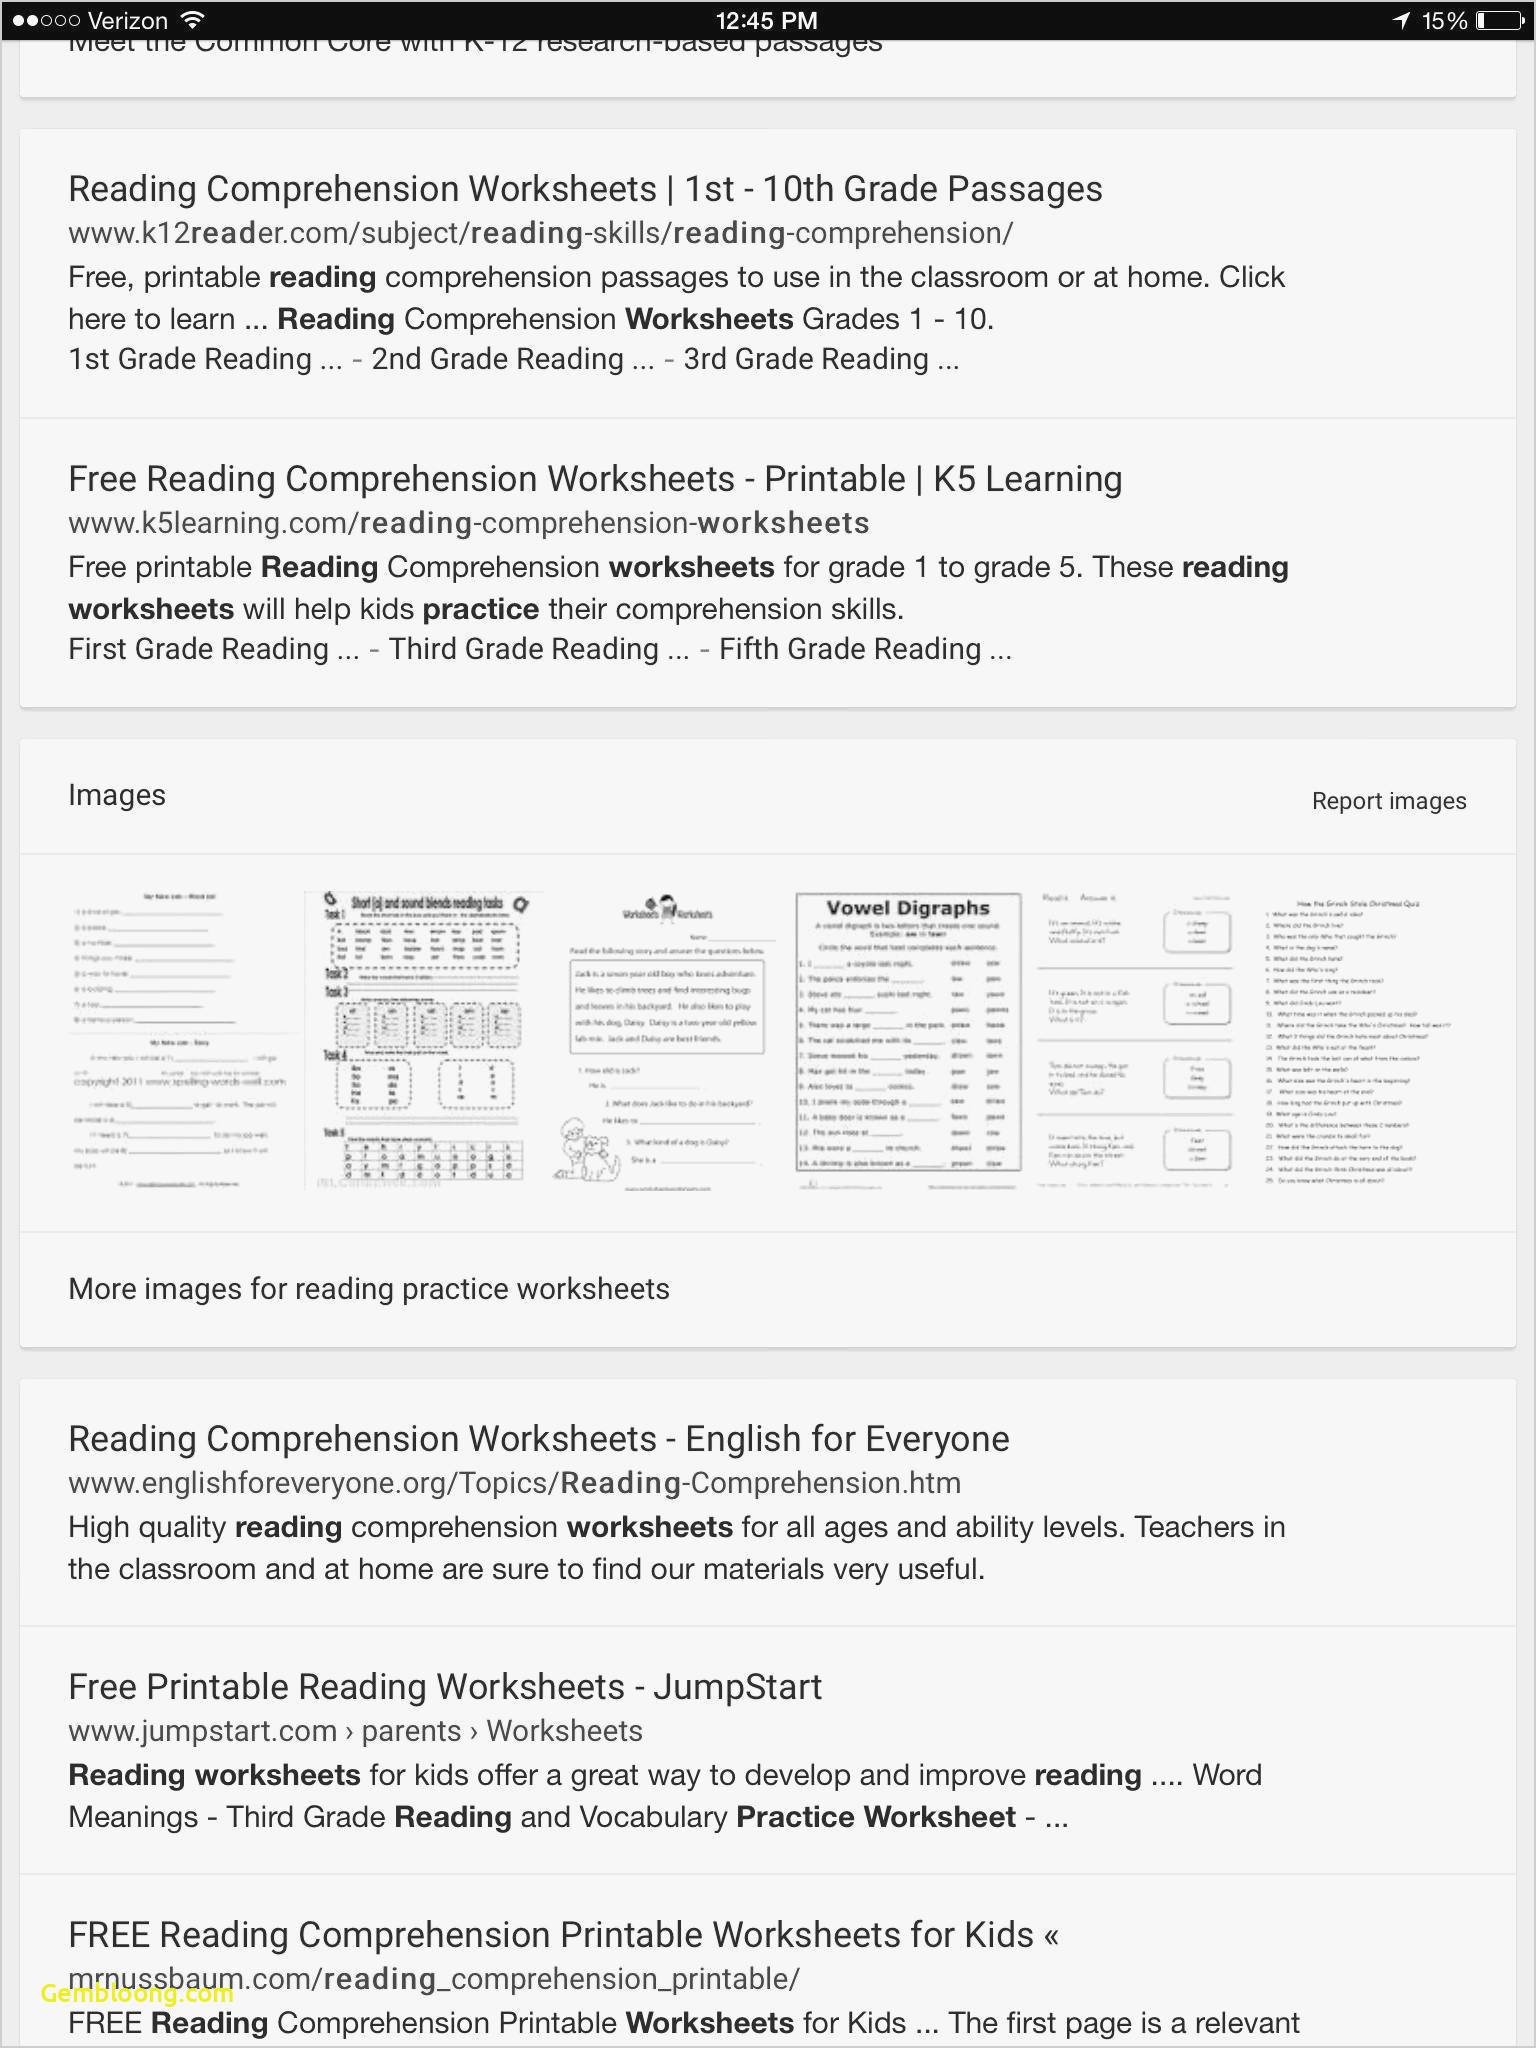 Reading Comprehension Worksheets For 1St Grade - Cramerforcongress | Free Printable Comprehension Worksheets For 5Th Grade